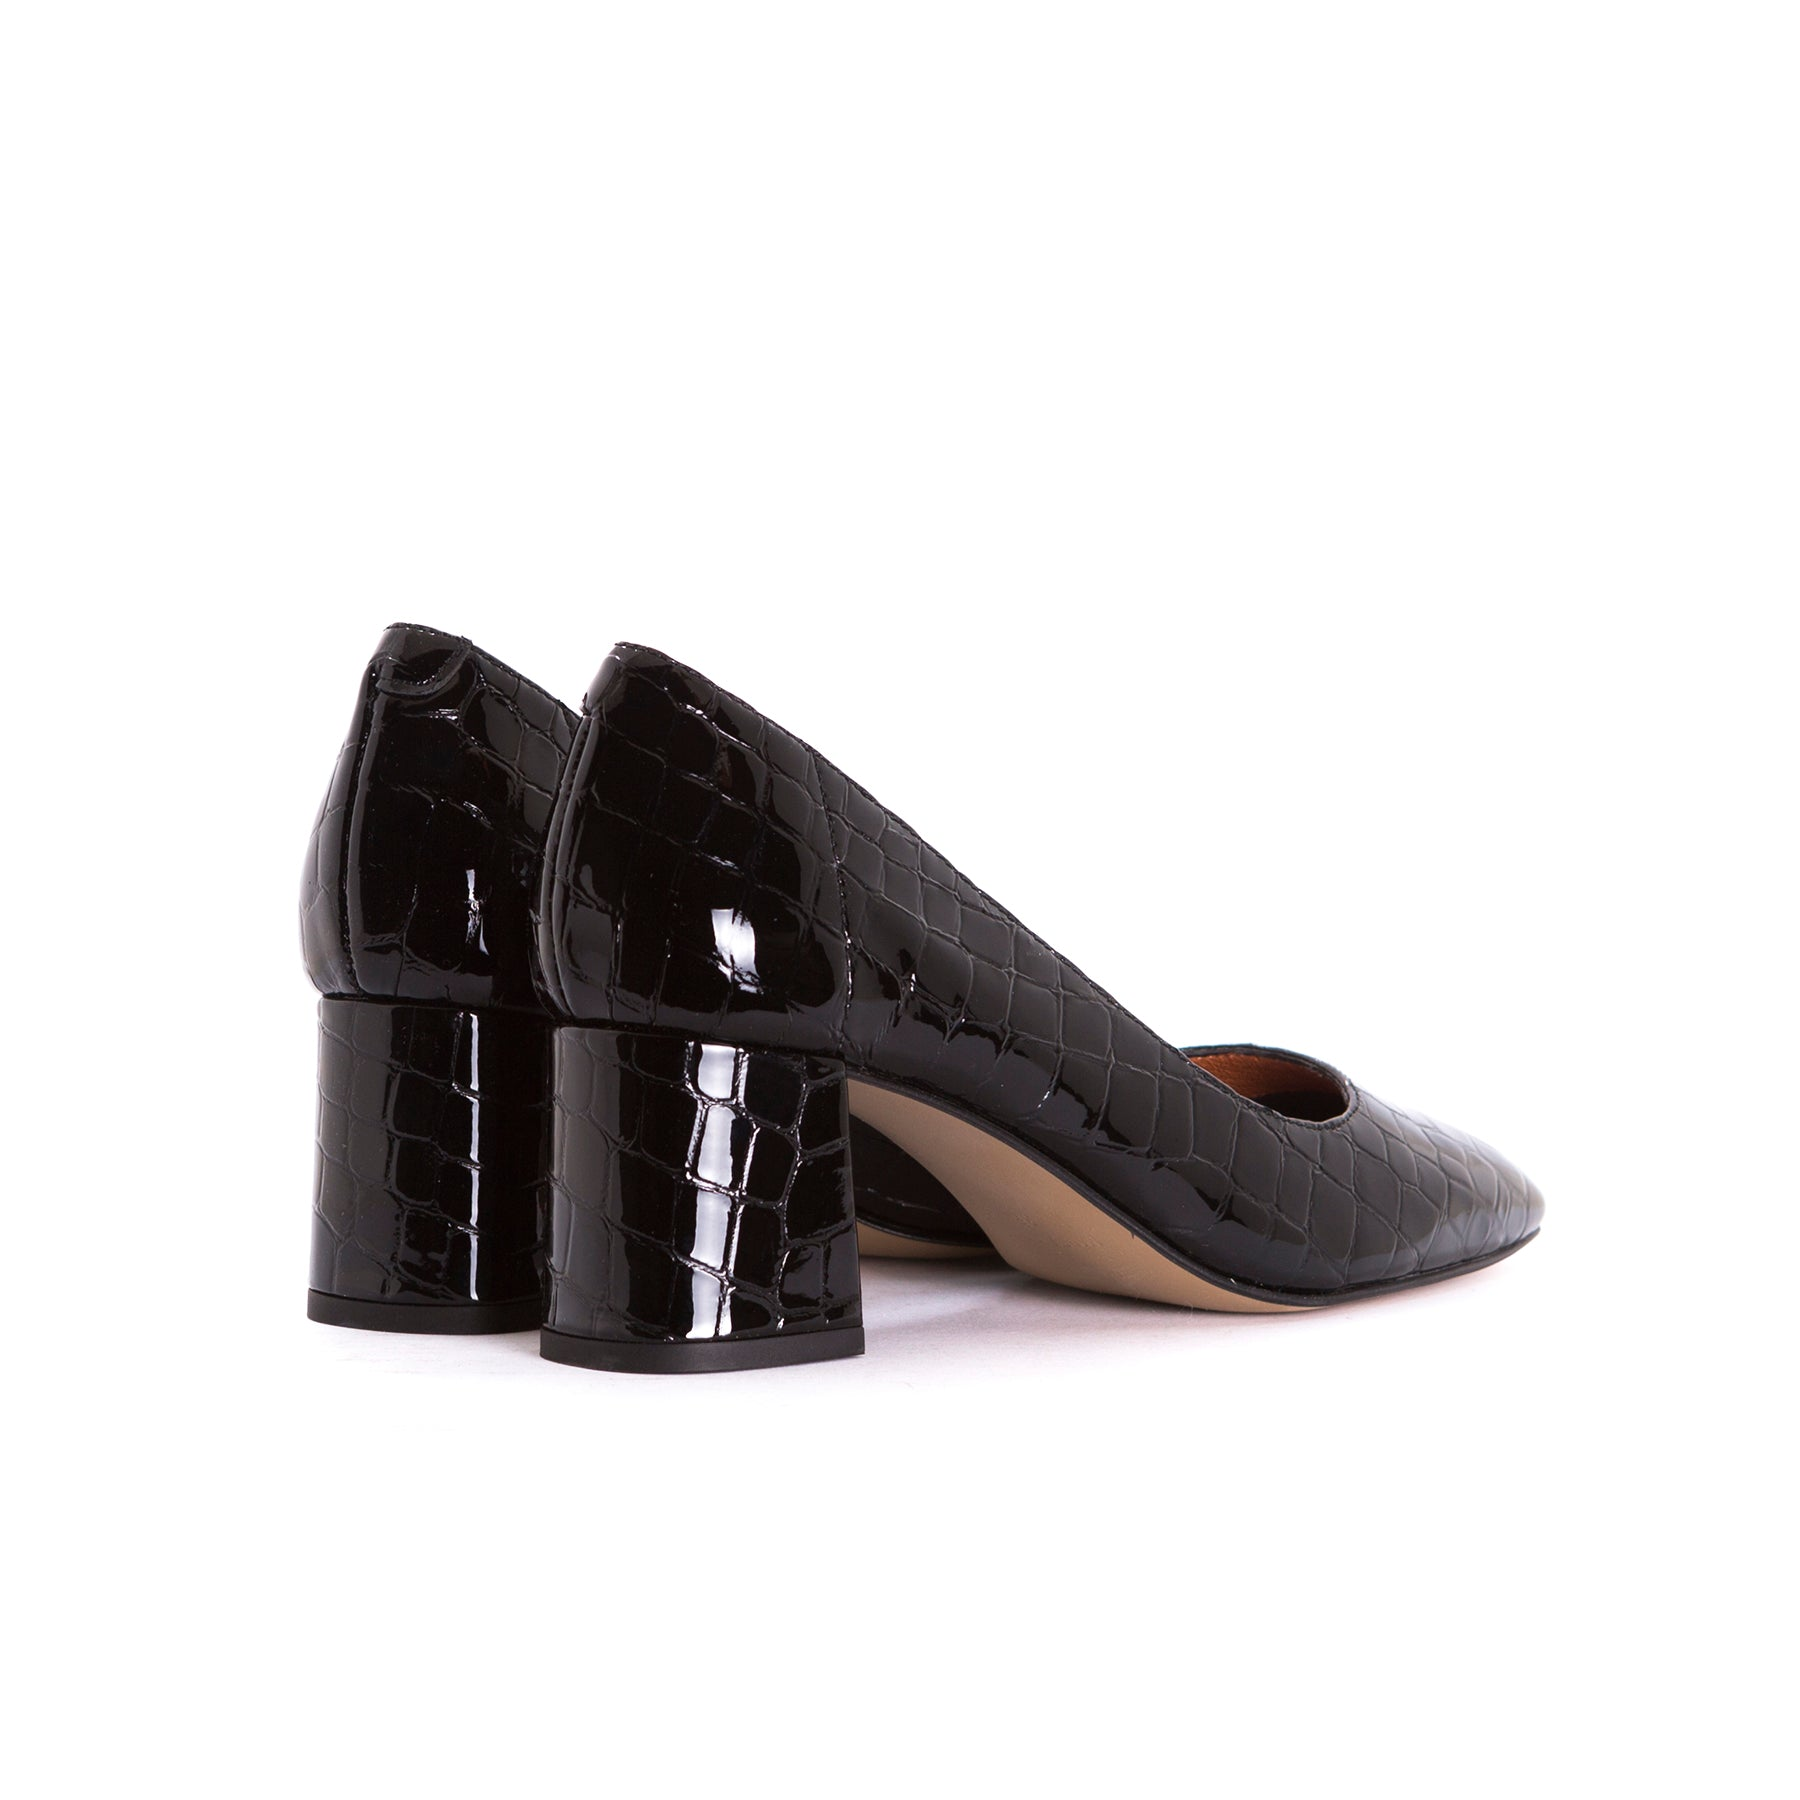 Rupie Black Croco Pumps